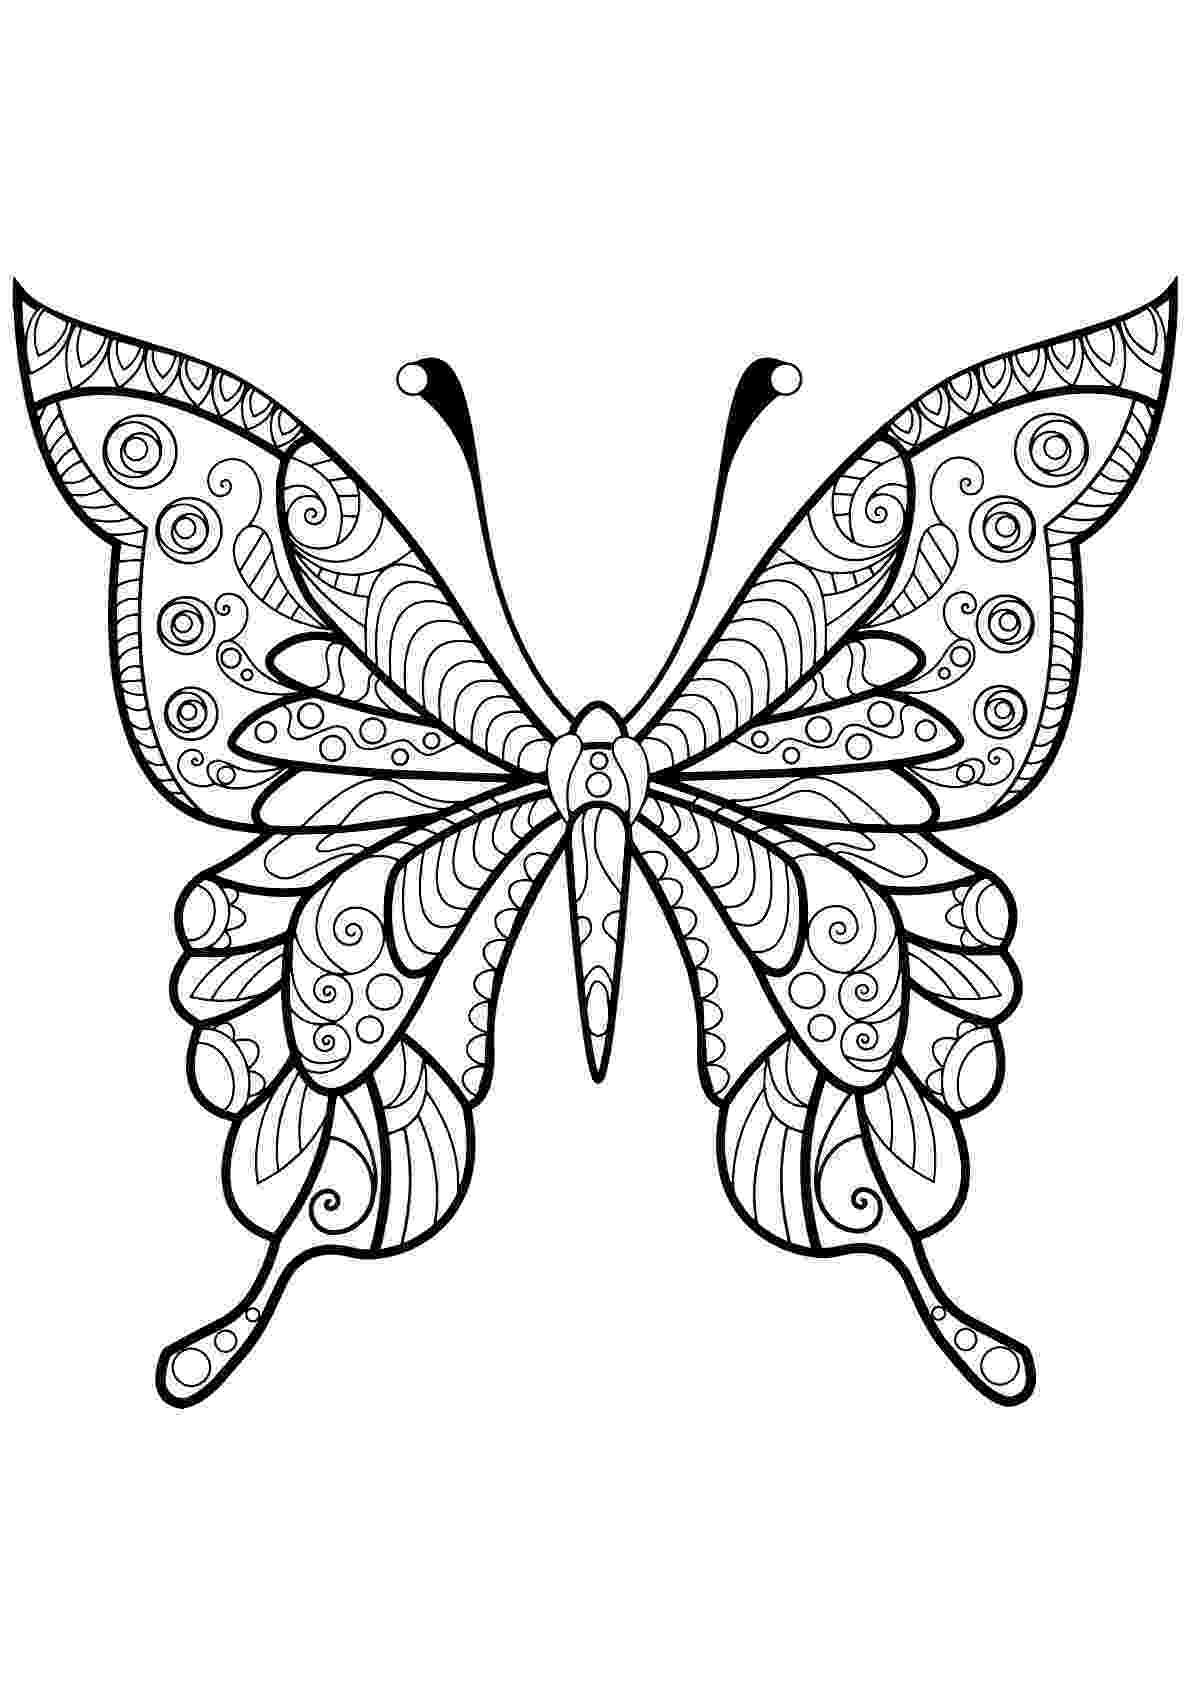 coloring pages for adults butterflies adult coloring pages butterfly realistic coloring pages adults for coloring pages butterflies